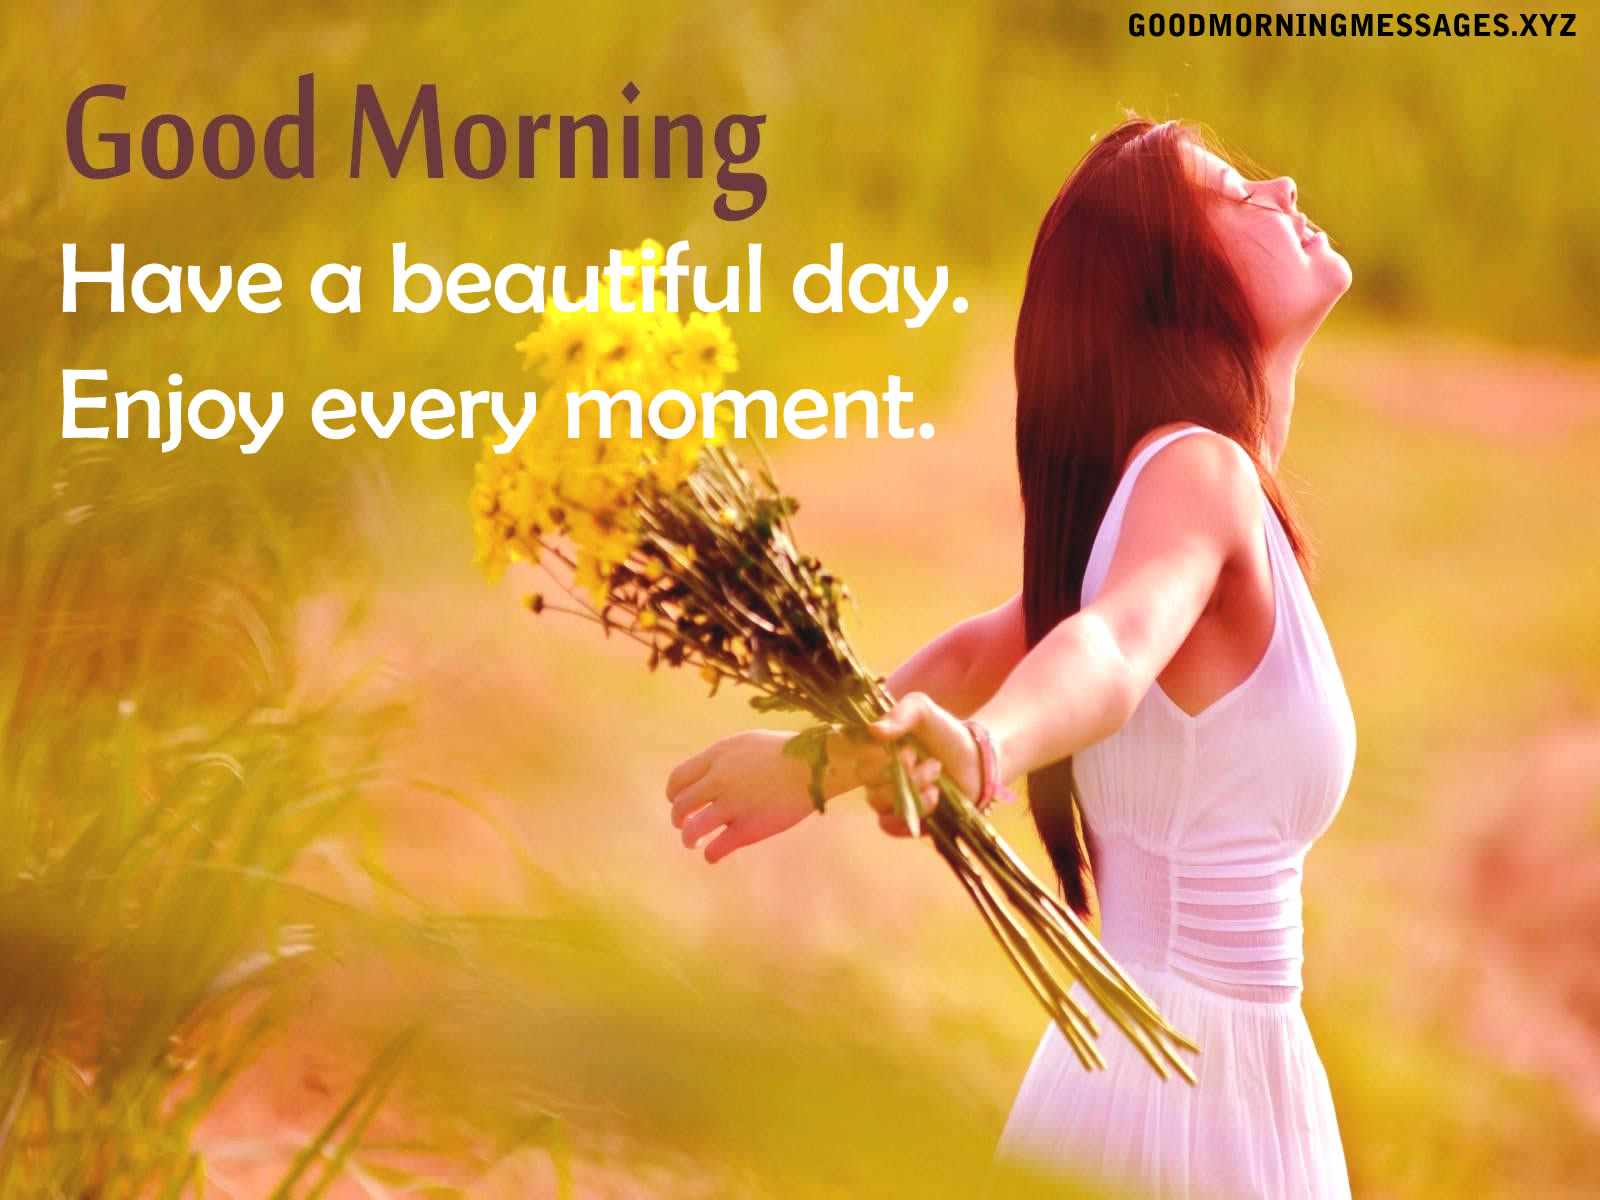 Have a beautiful day Enjoy every moment